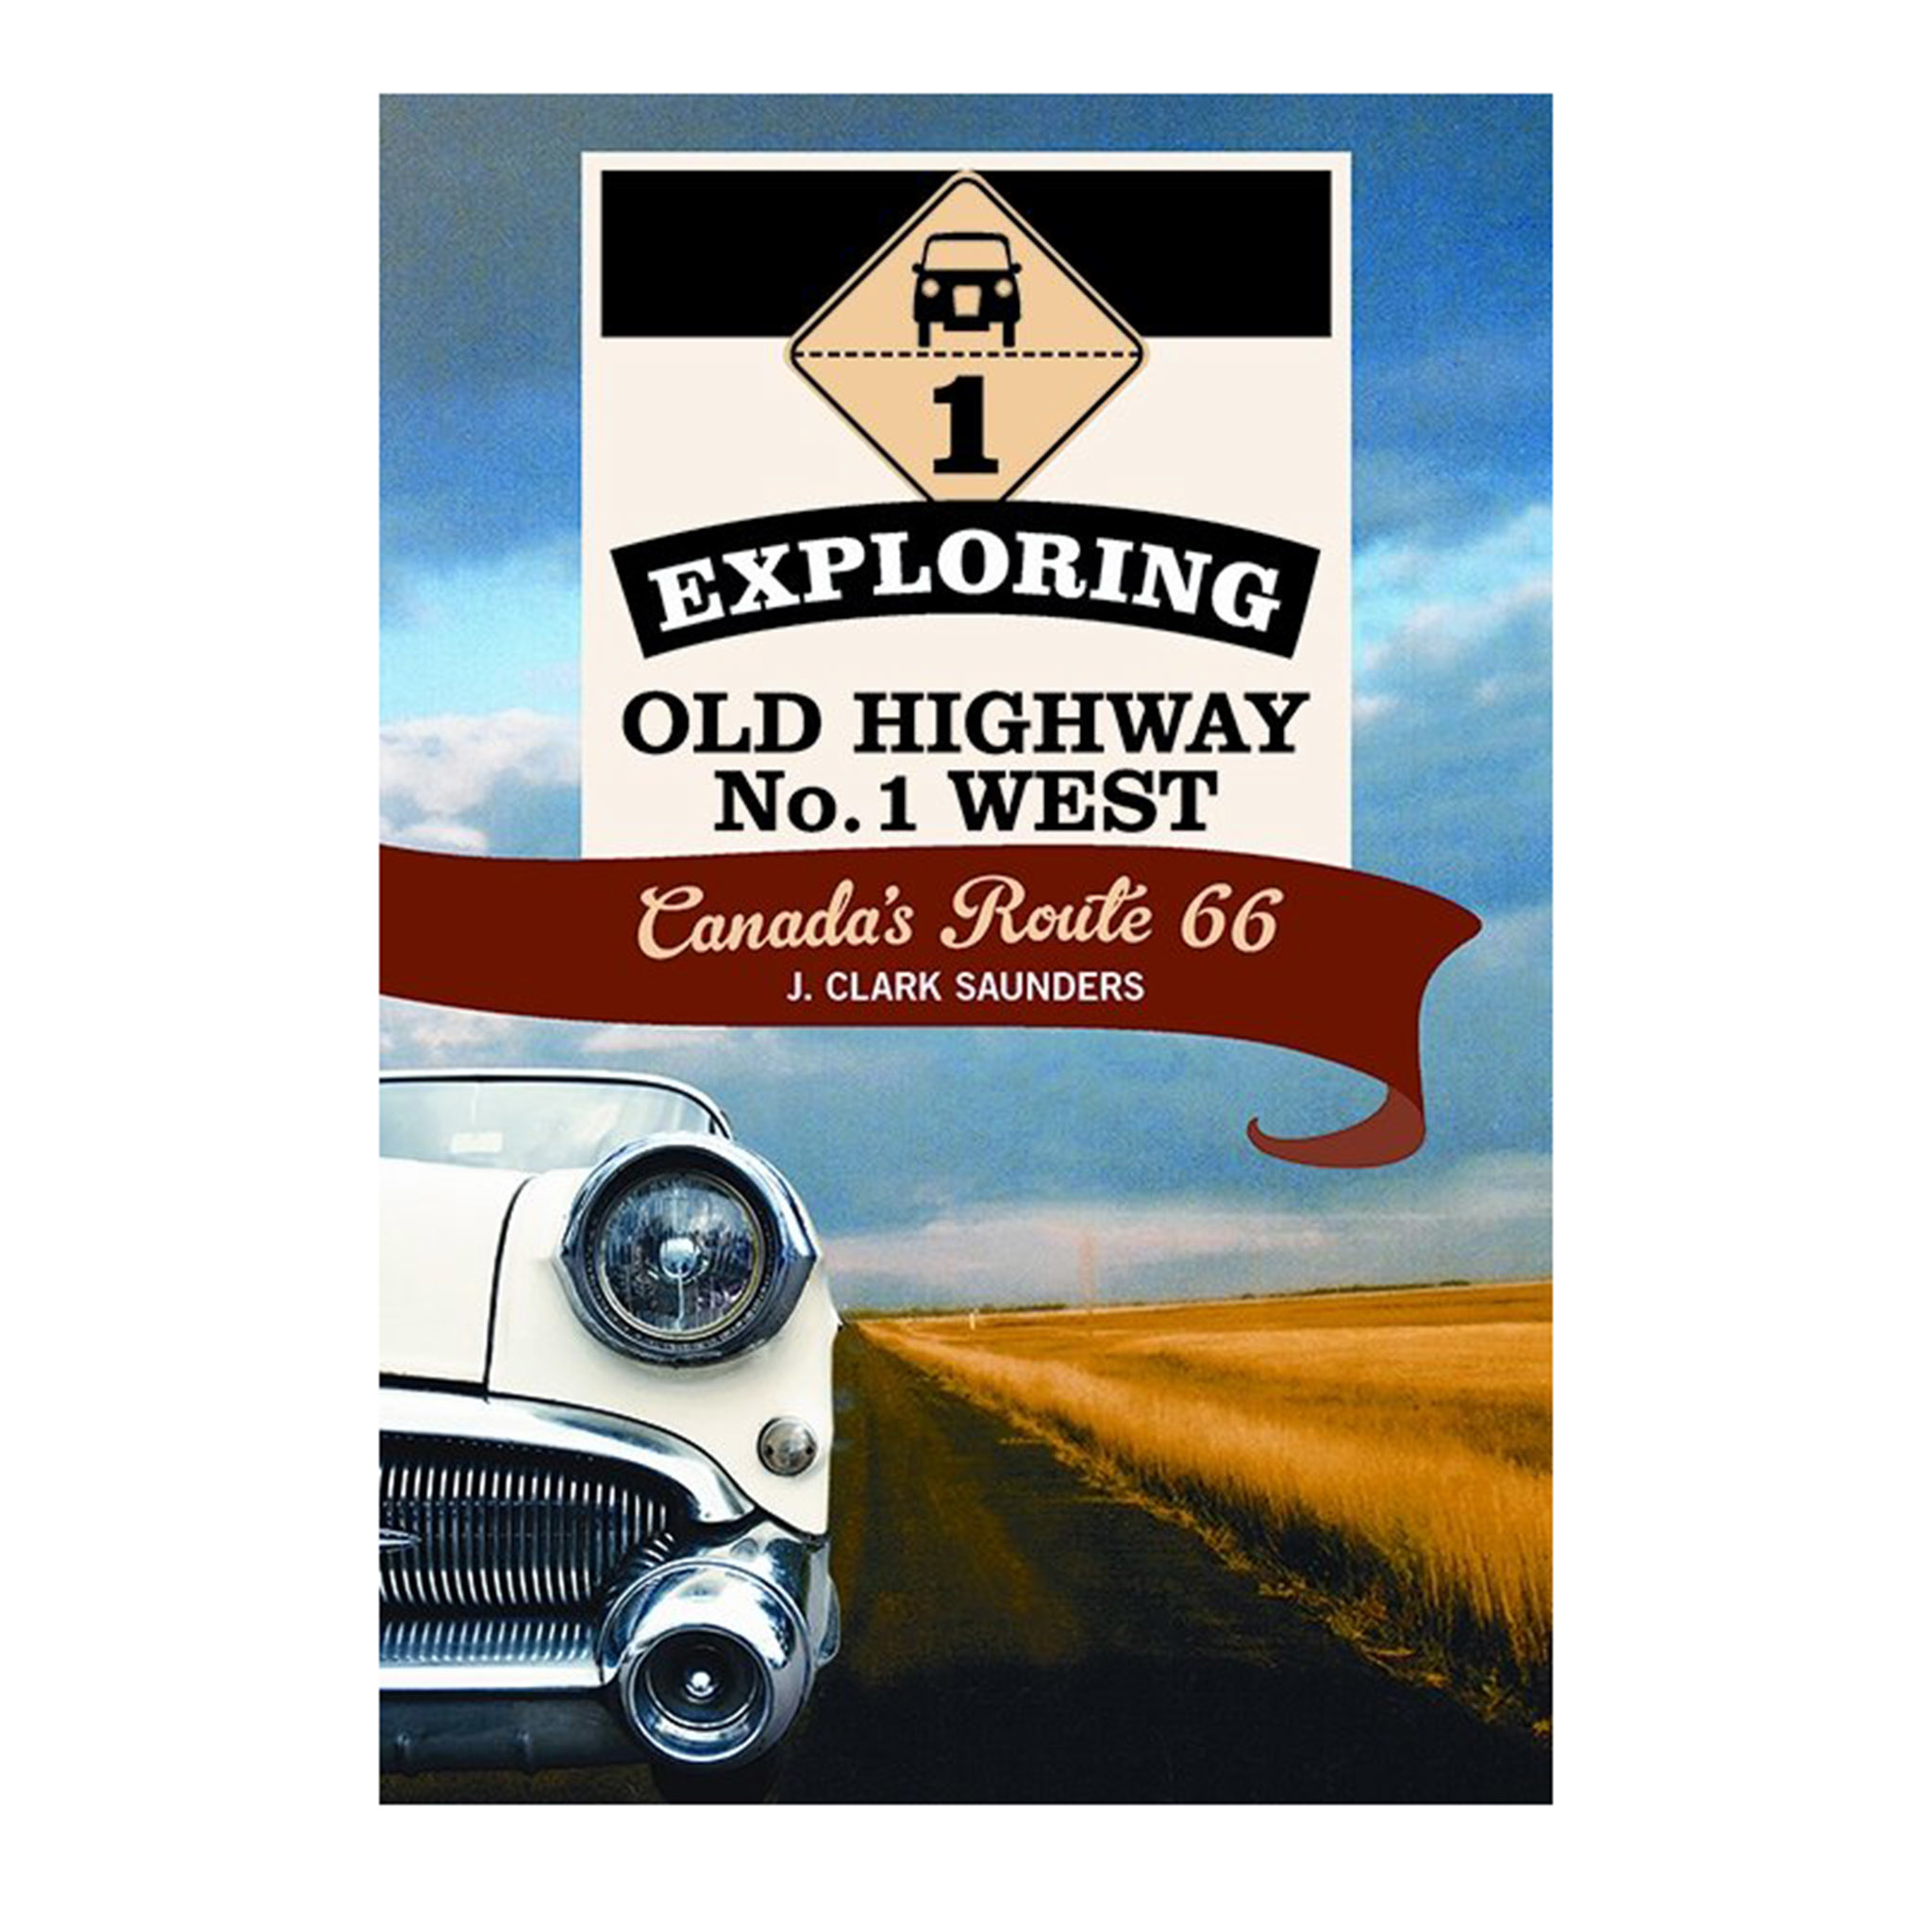 Exploring Old Highway No. 1 West : Canada's Route 66